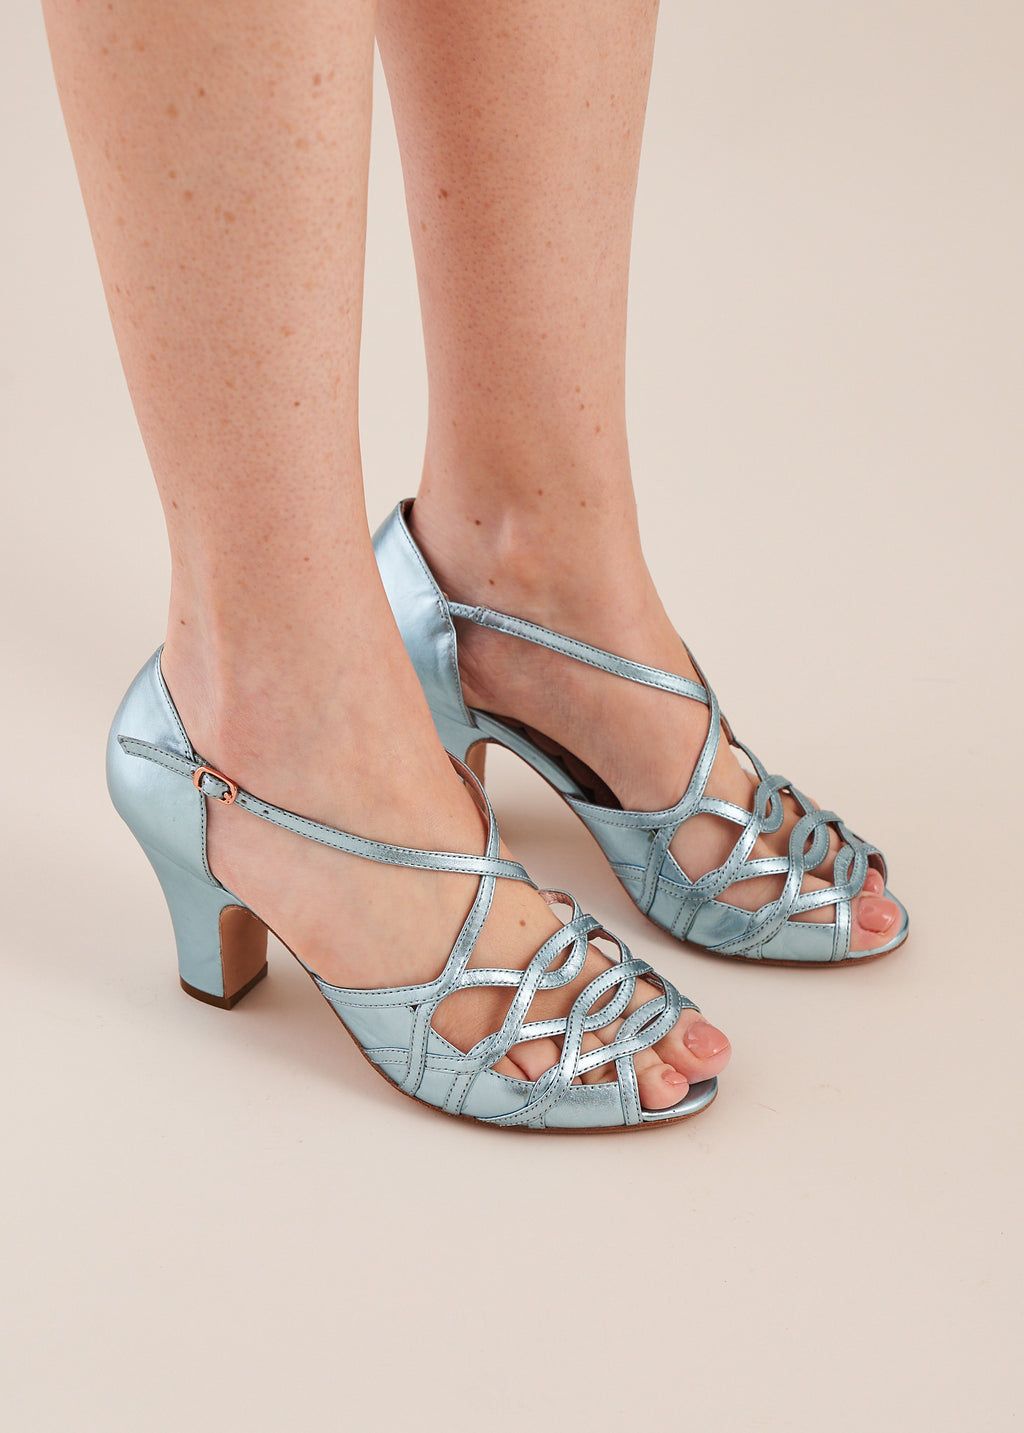 Adele Sky Blue Metallic Leather Strappy Heeled Sandal